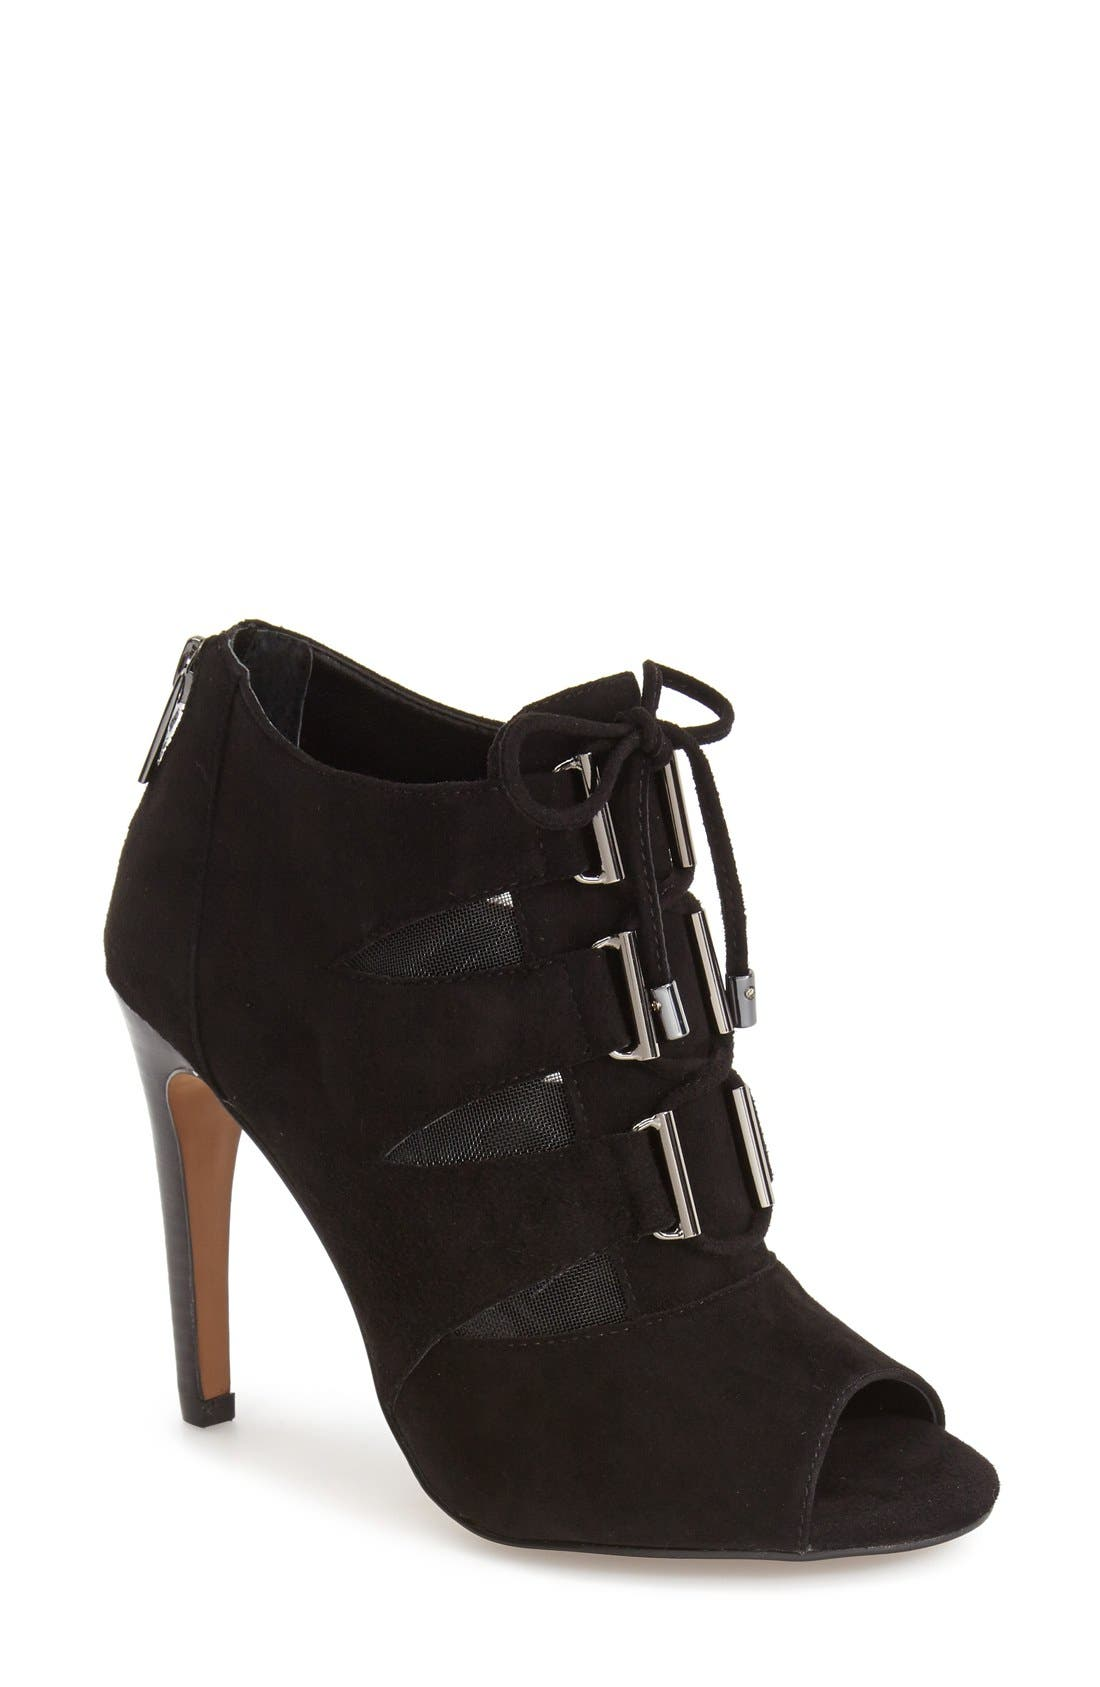 Main Image - Isolà 'Brinly' Peep-Toe Bootie (Women)